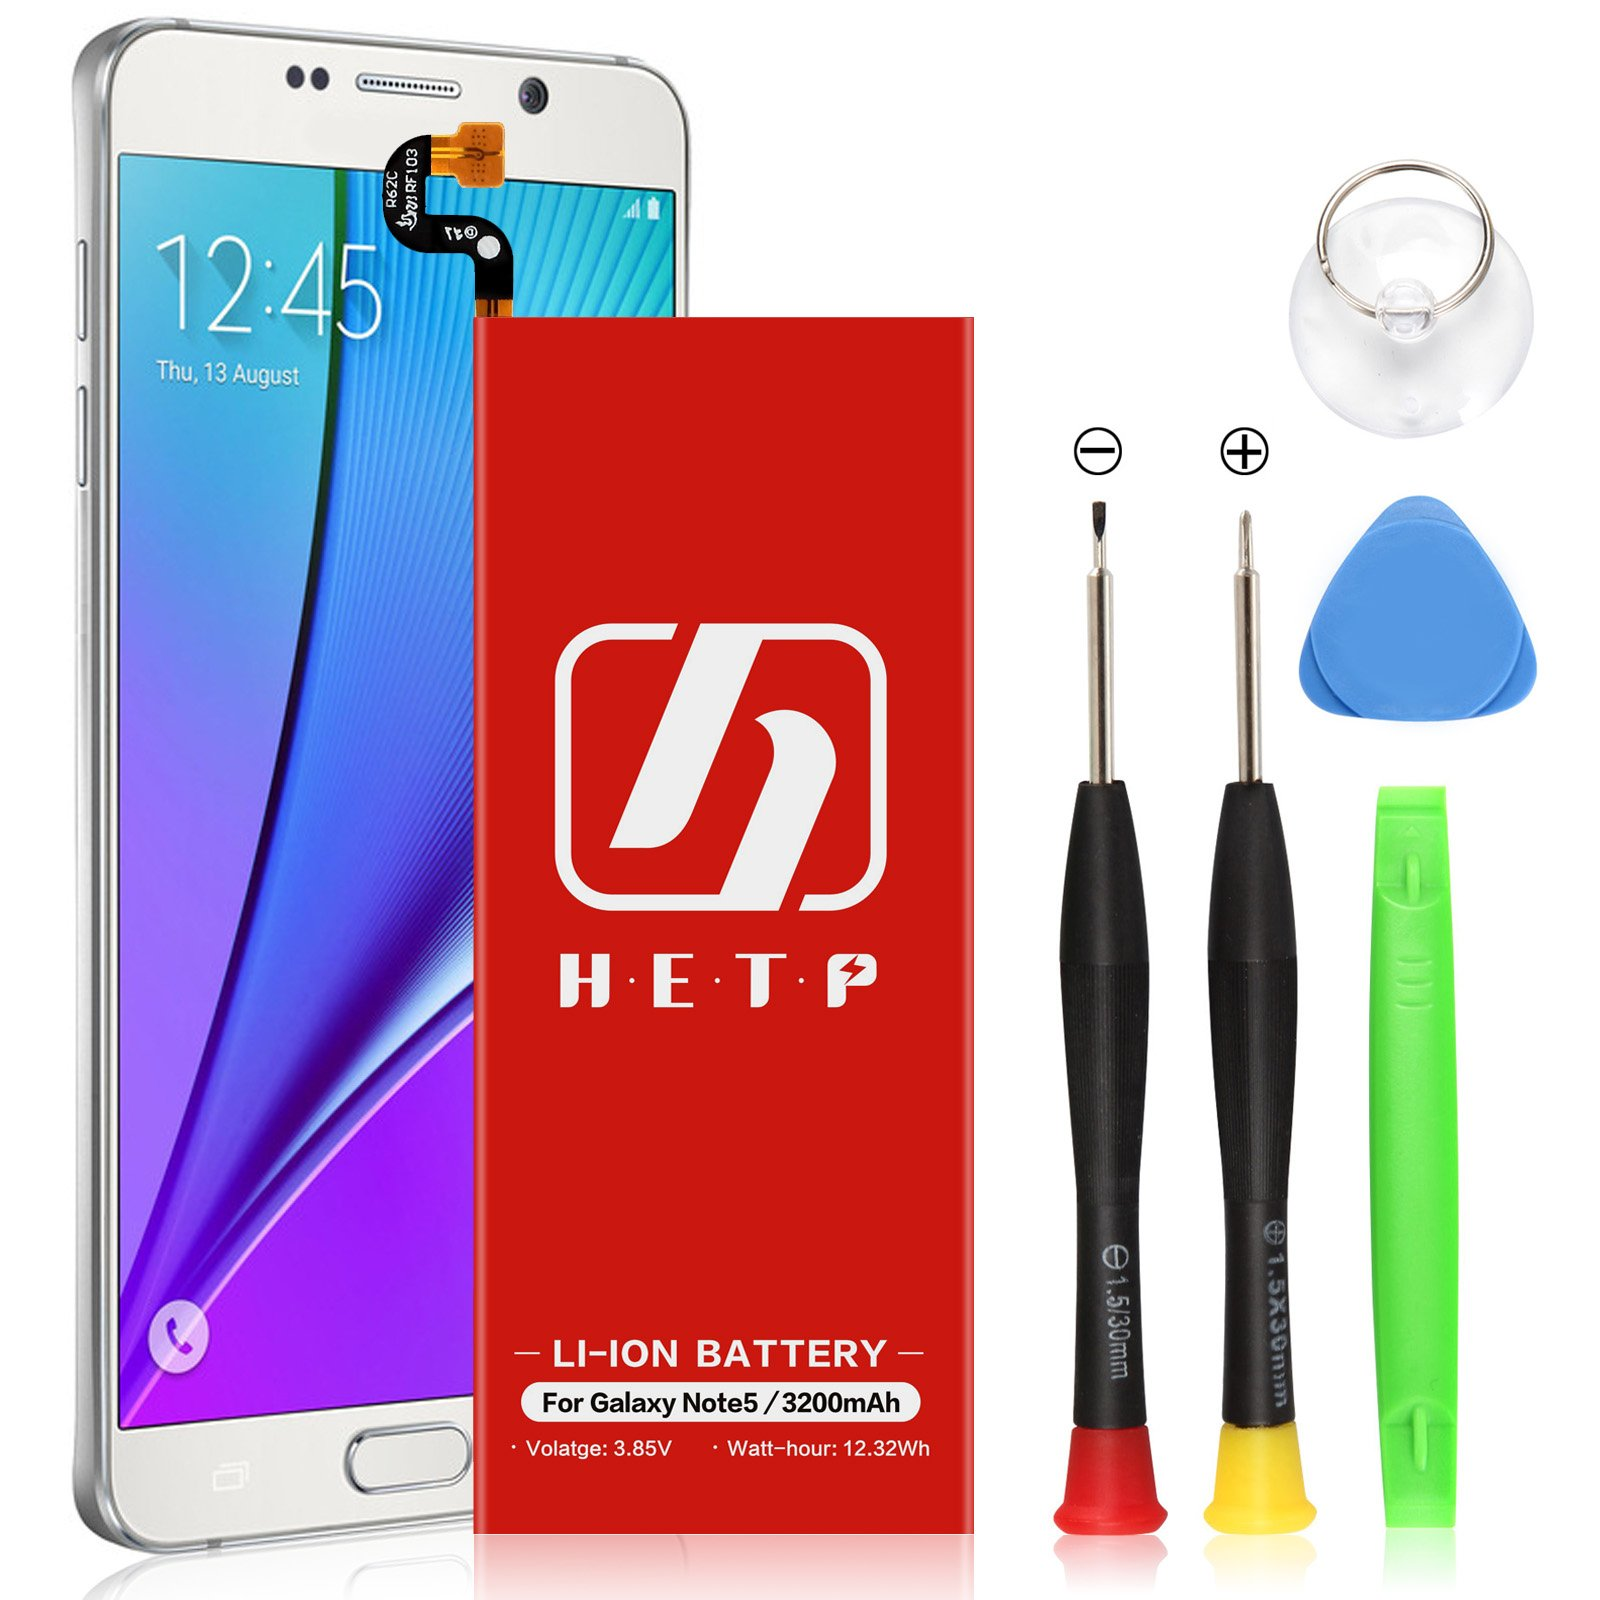 Note 5 Battery 3200mAh HETP UPGRADED Internal Li-ion Polymer Replacement Battery for Samsung Galaxy Note 5 SM-N920 N920T N920A N920P N920V with Free Screwdriver Tool